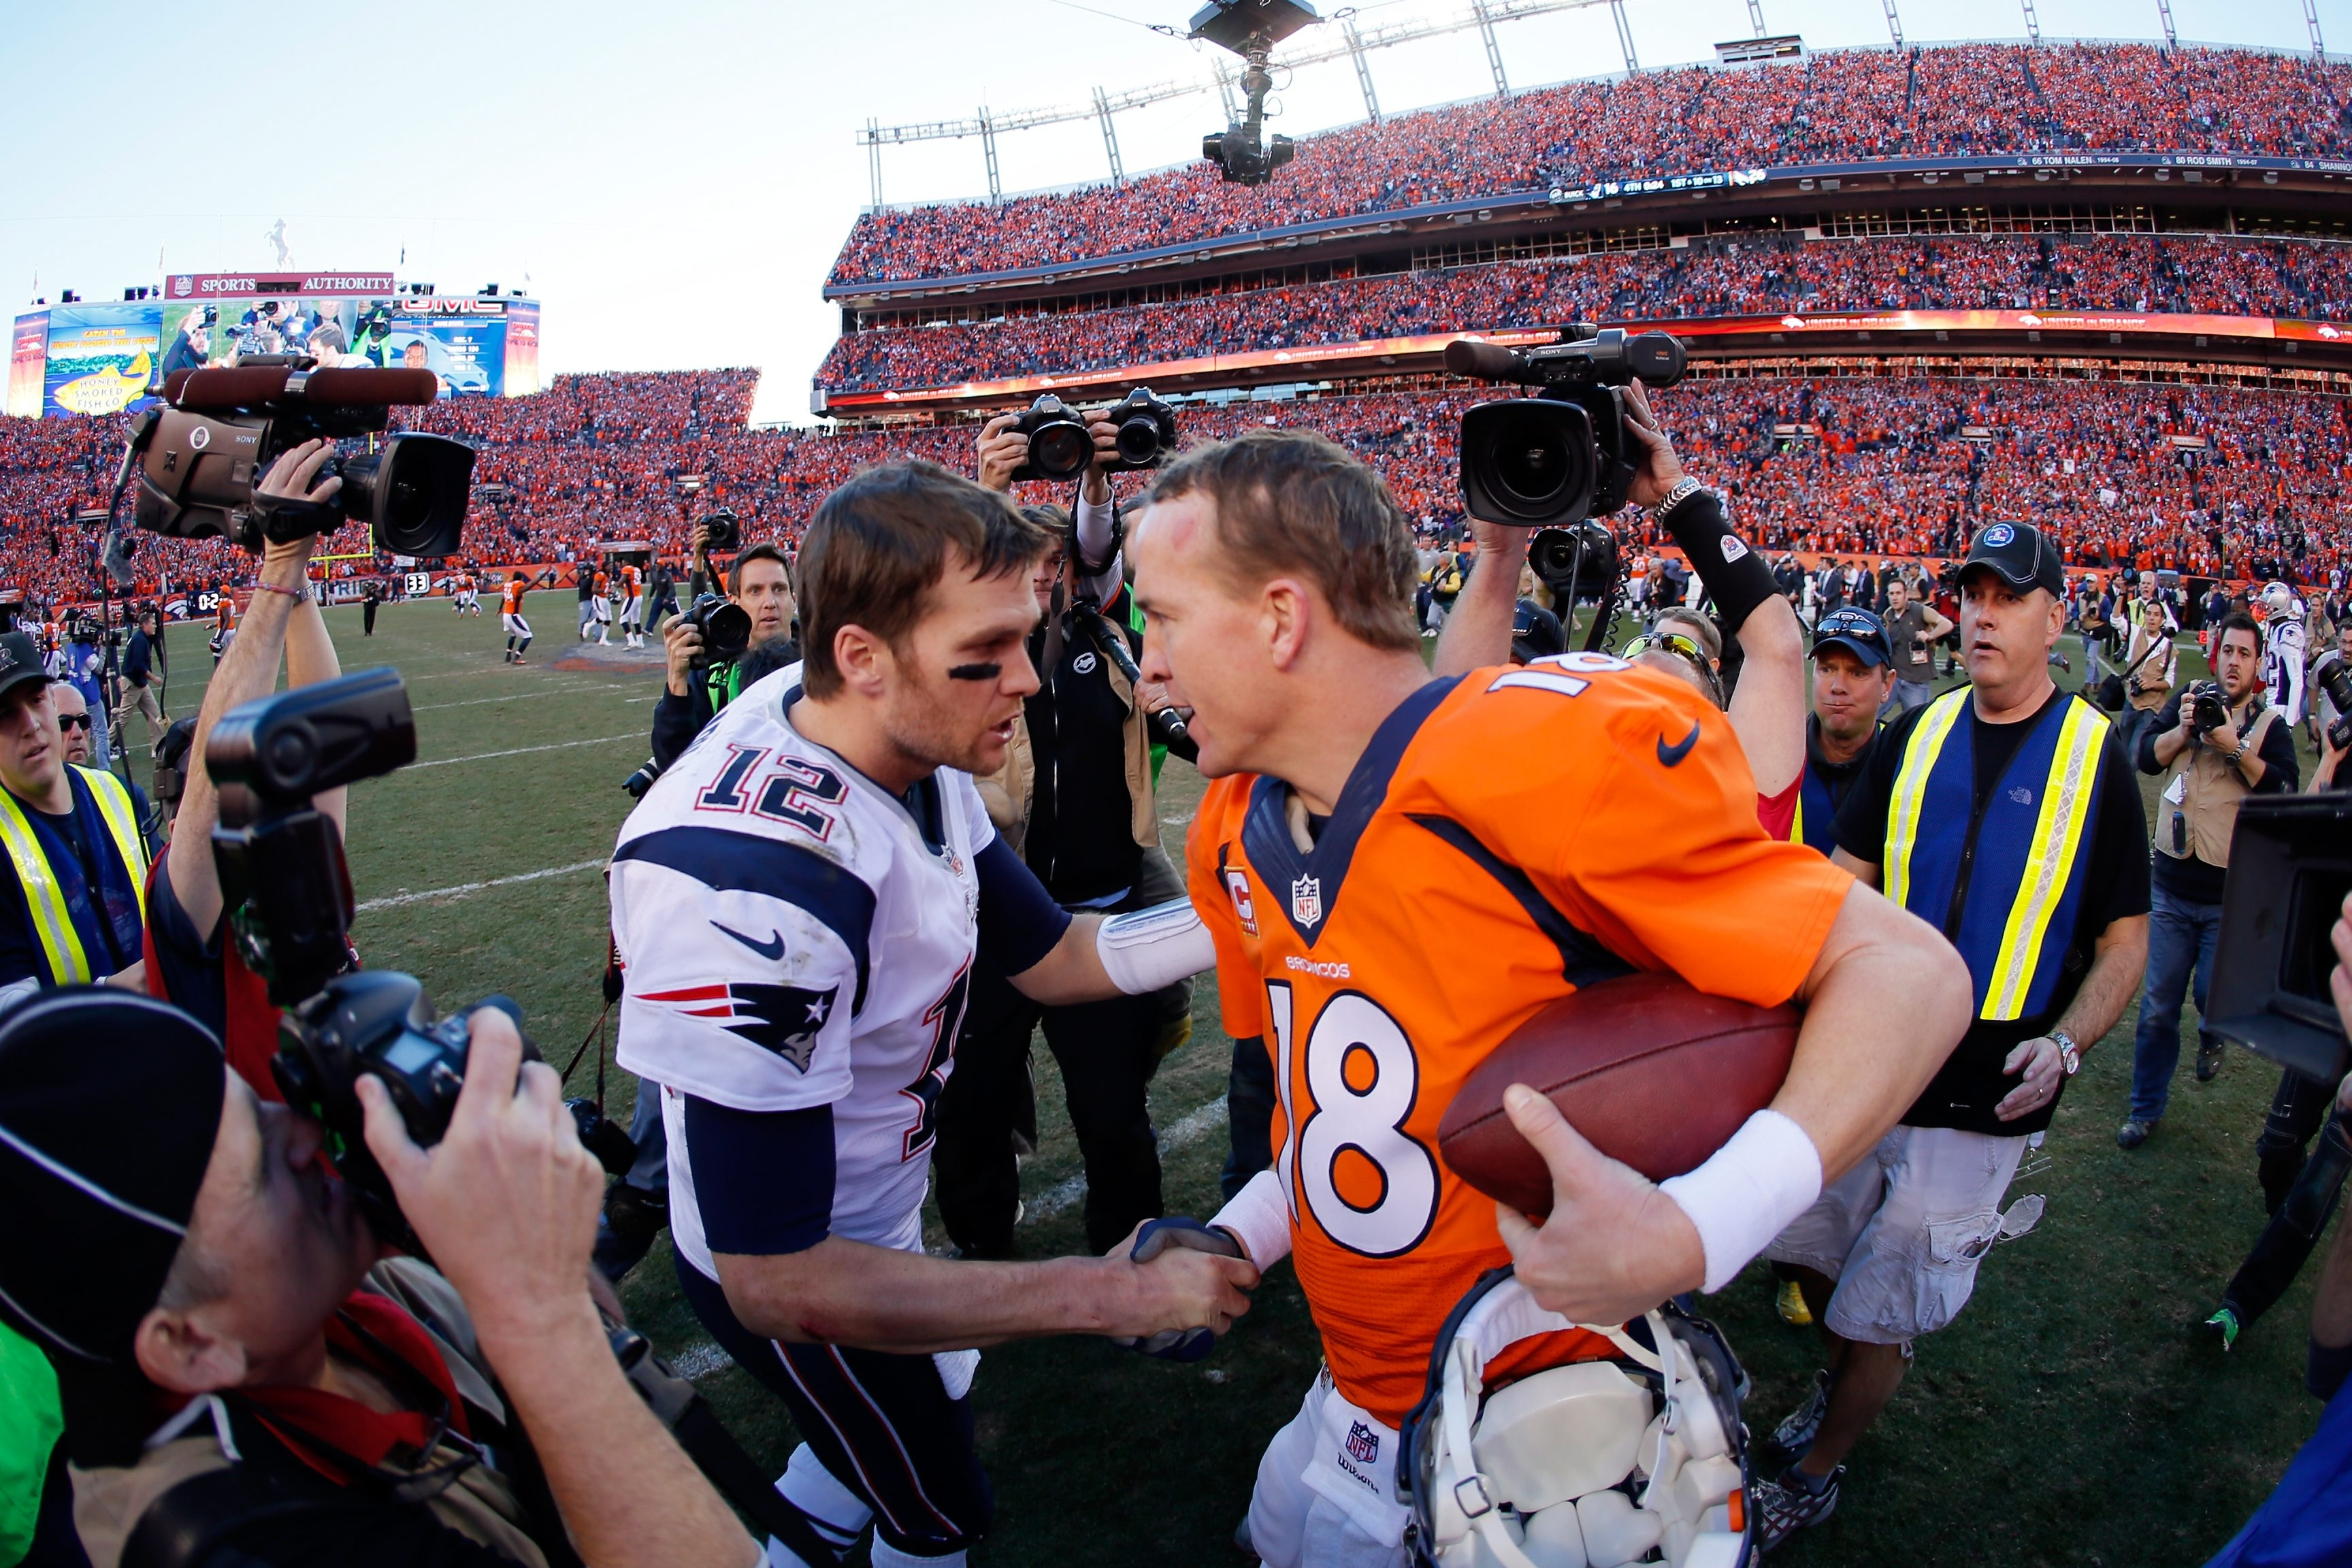 New England QB Tom Brady congratulates Denver QB Peyton Manning after the Broncos defeated the Patriots, 26-16, for the AFC Championship in January, 2014.